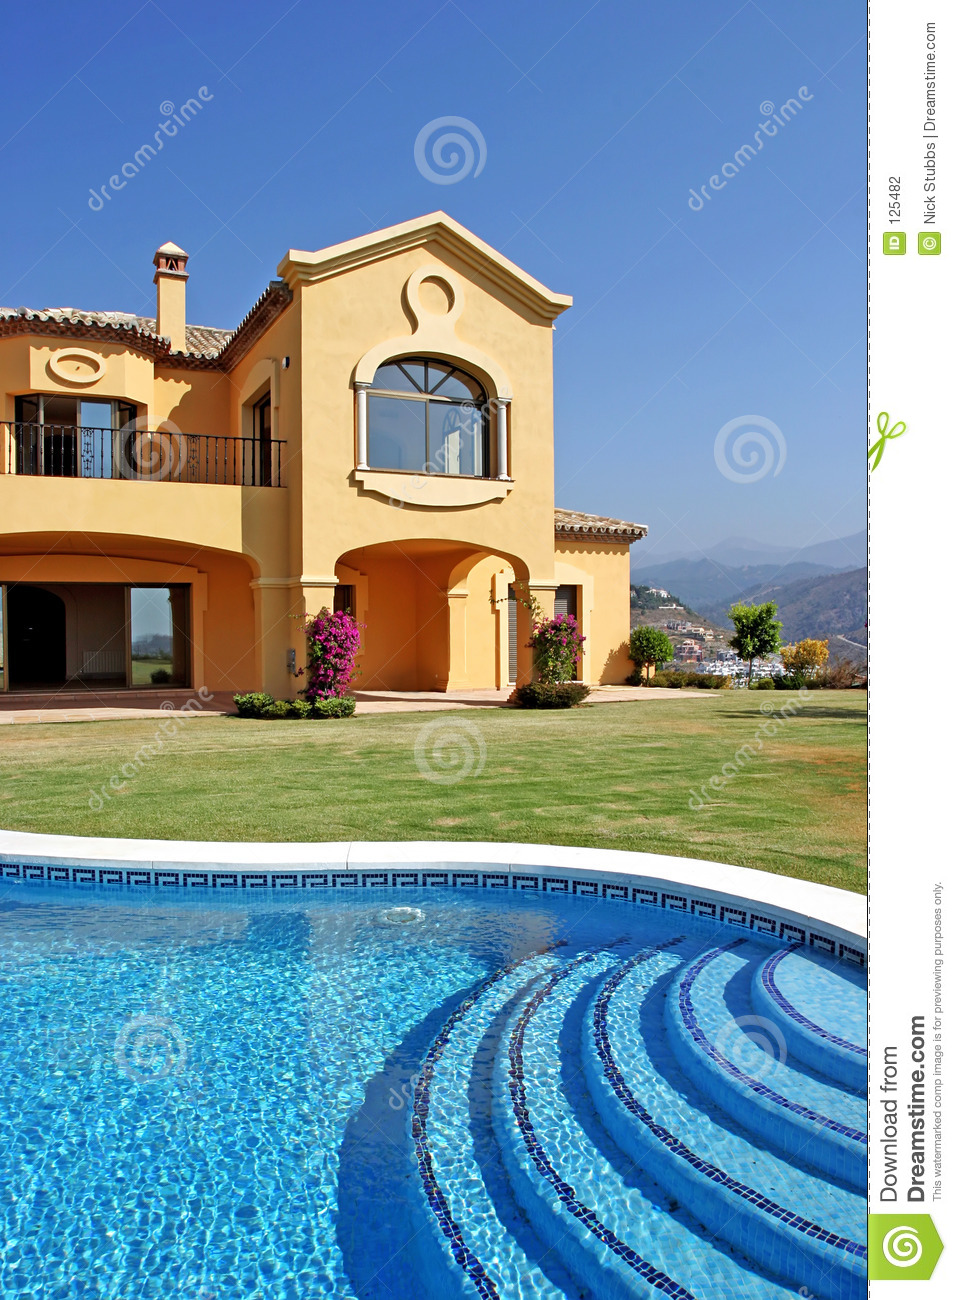 Large yellow sunny spanish villa with pool and blue sky stock photo image 125482 - Pool and blues ...